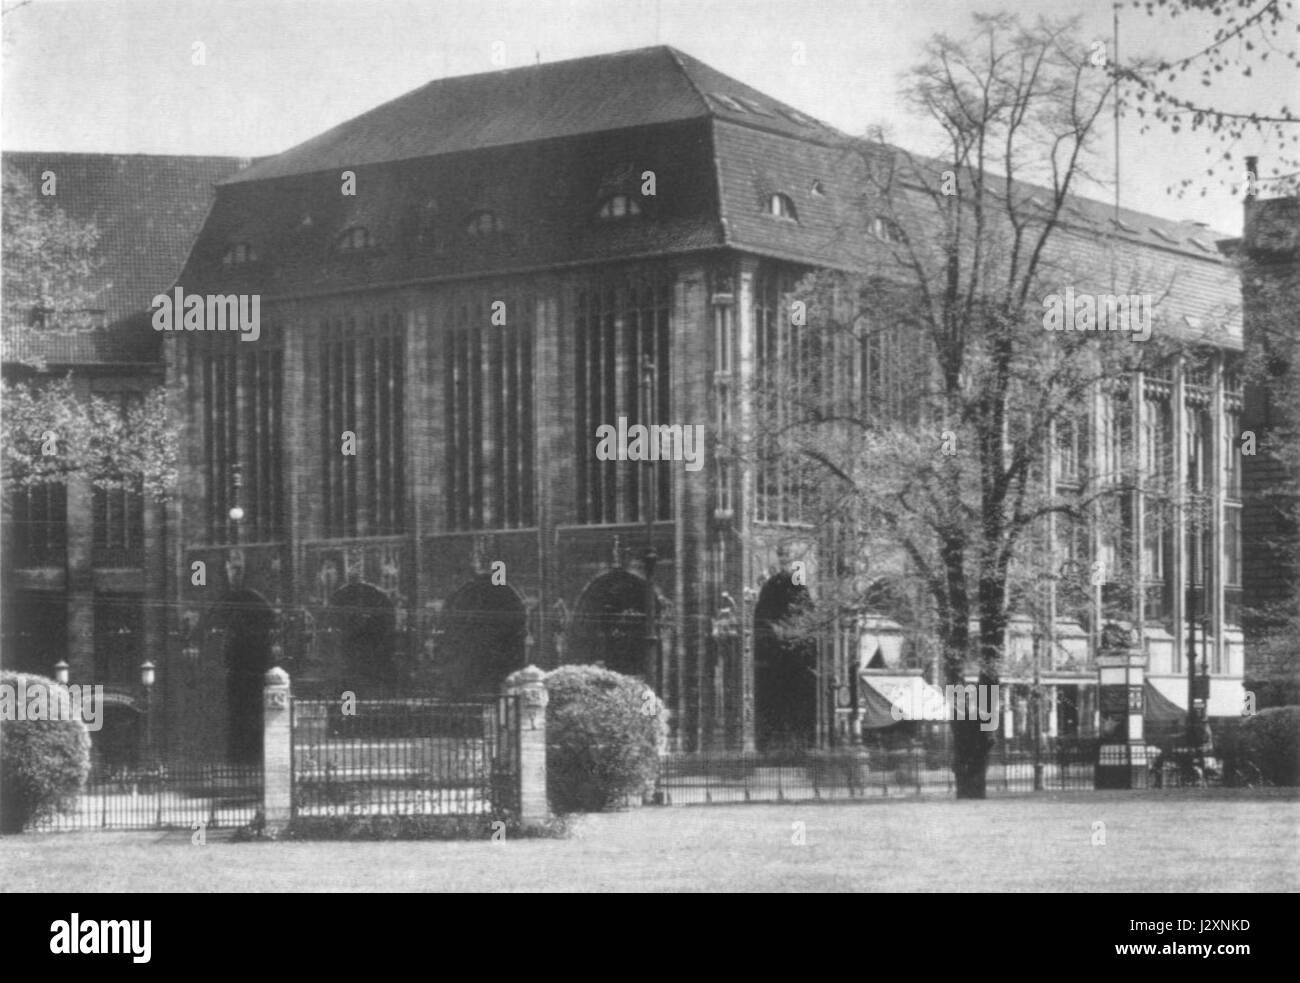 Berliner Platz 2 L Sungen kaufhaus wertheim stock photos kaufhaus wertheim stock images alamy